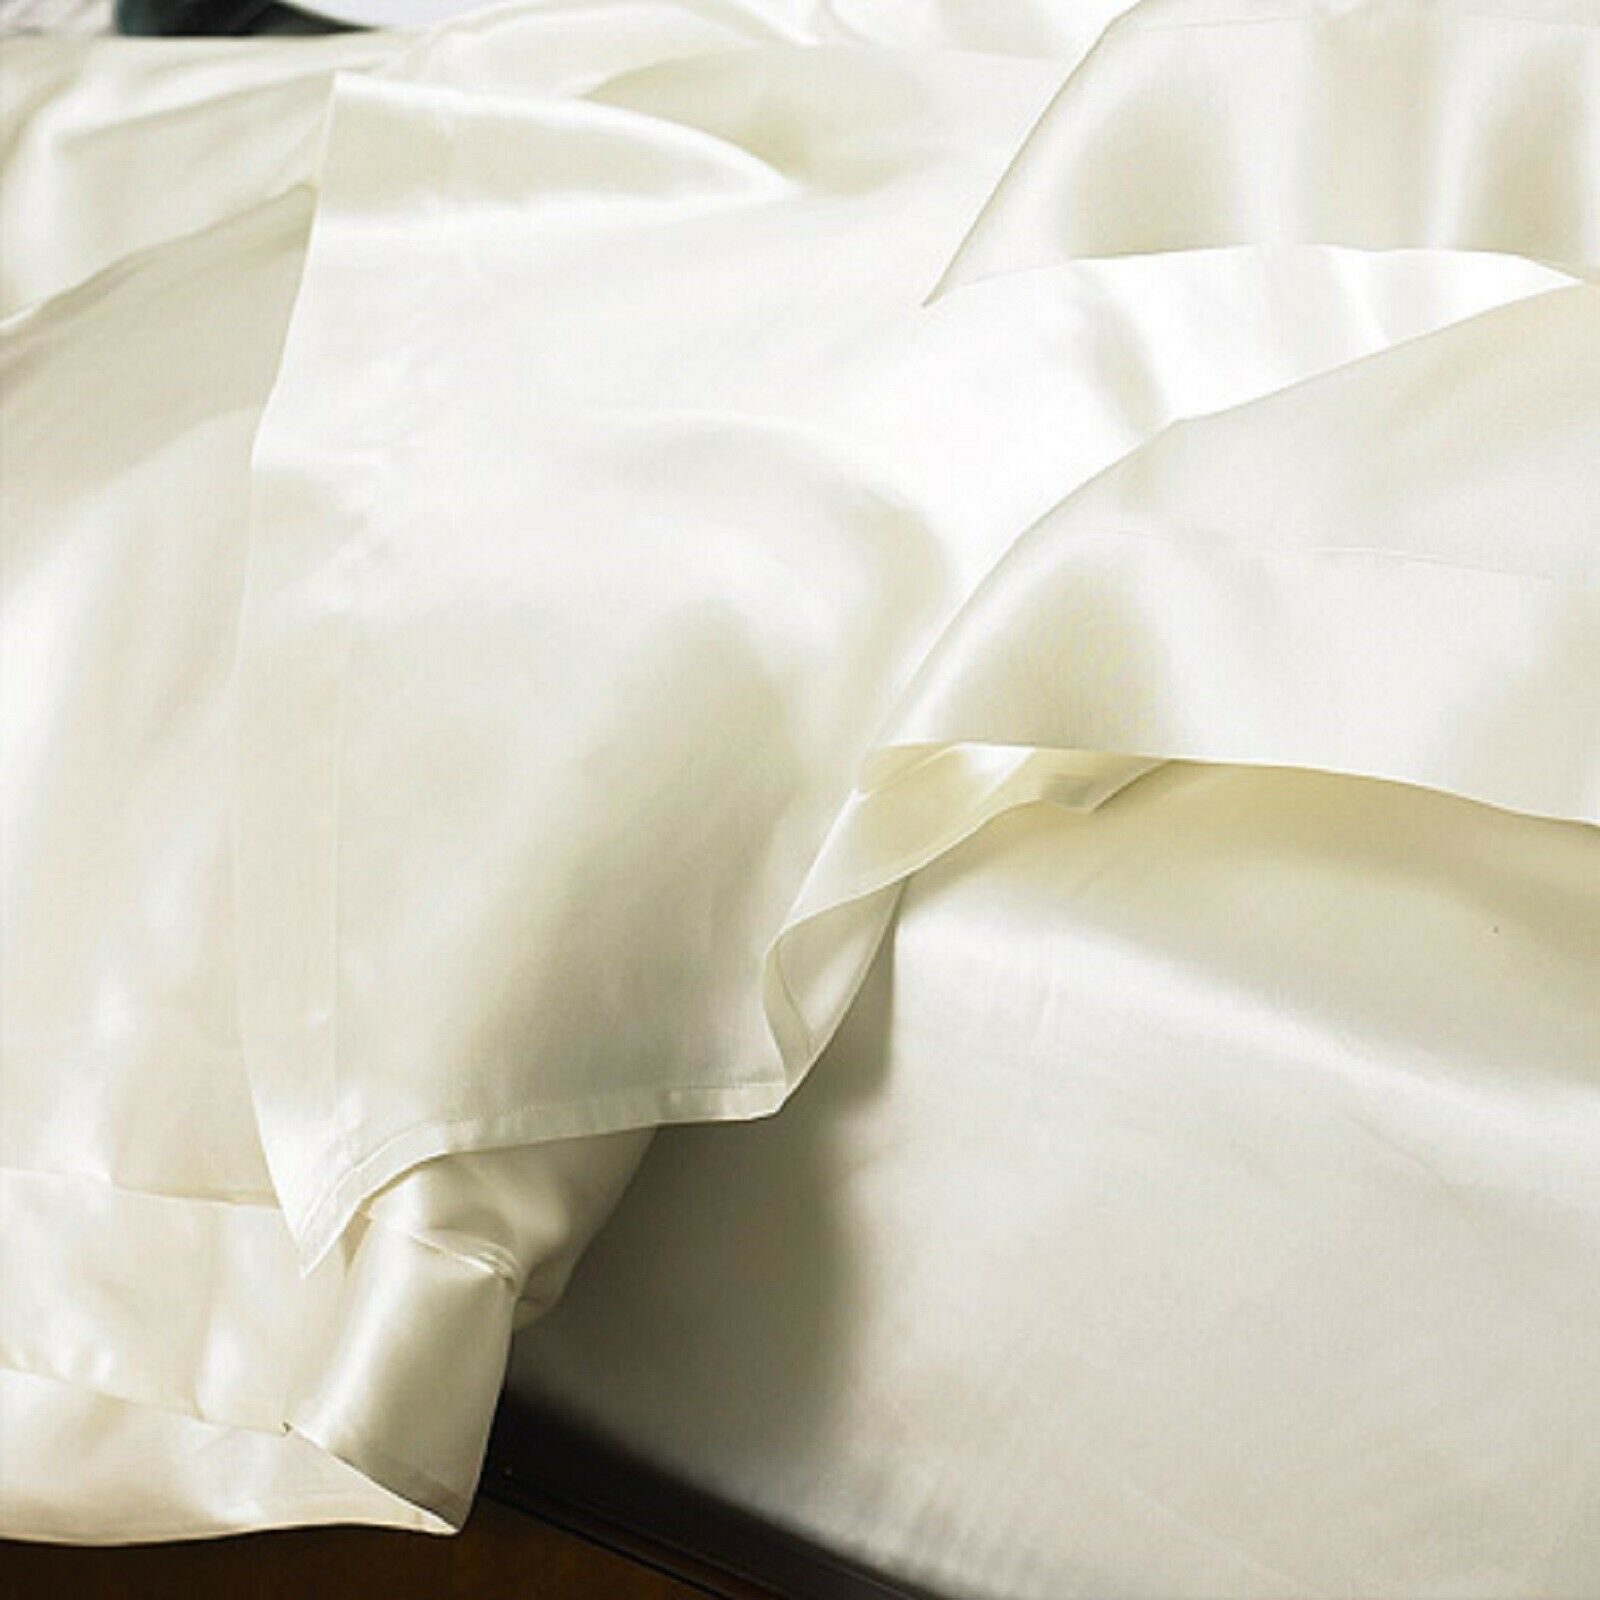 Carlty's 100% Pure Mulberry Silk Bed Set, Sheets & Pillowcases. (Premium Silk)